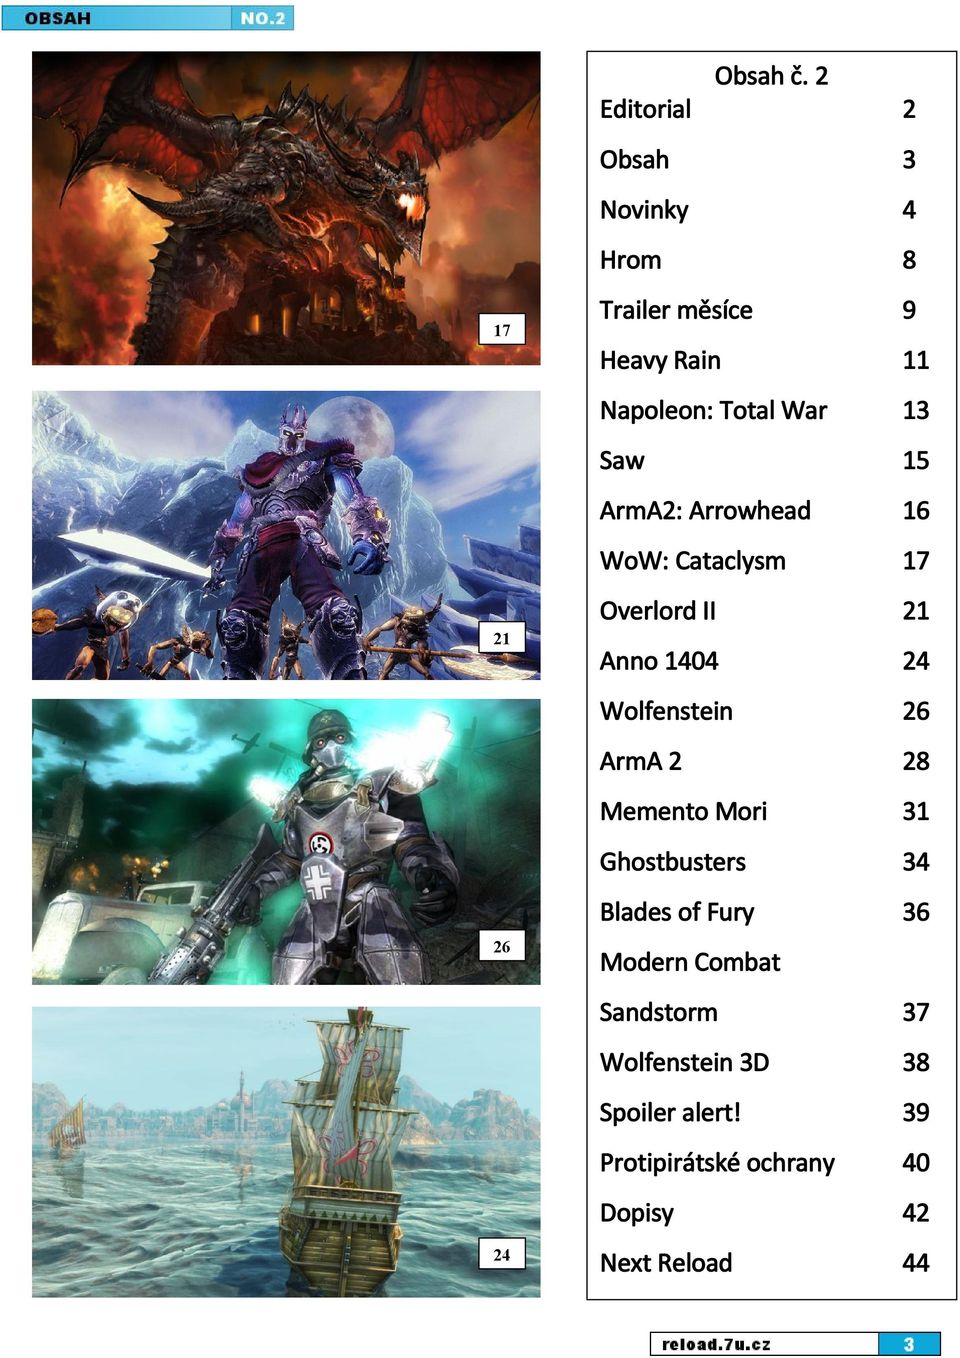 Total War 13 Saw 15 ArmA2: Arrowhead 16 WoW: Cataclysm 17 Overlord II 21 Anno 1404 24